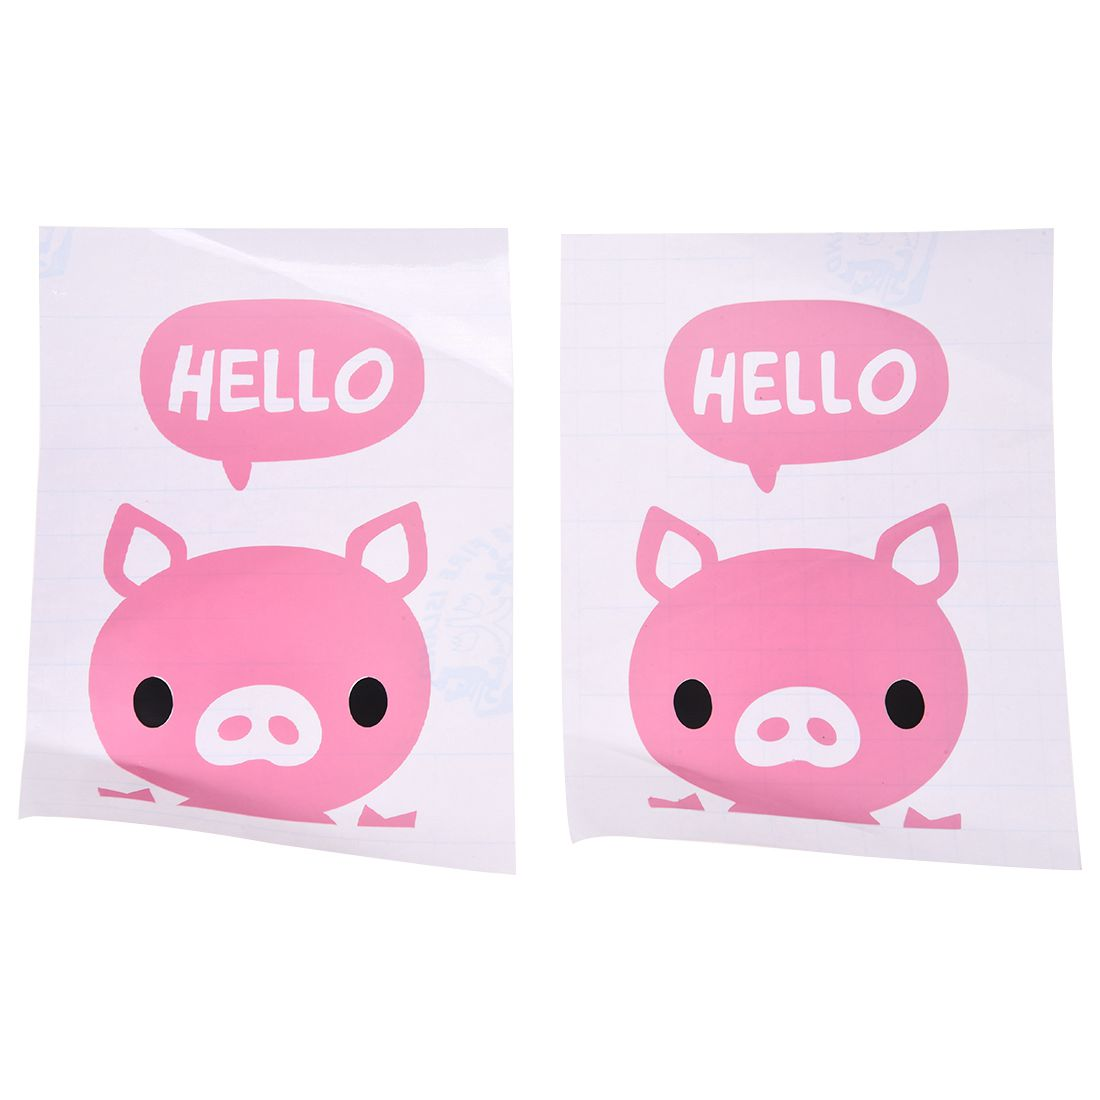 popular stickers on wallpaper buy cheap stickers on wallpaper lots 2pcs fancy wall stickers decoration switch stickers socket cartoon stickers on walls wallpaper pink china